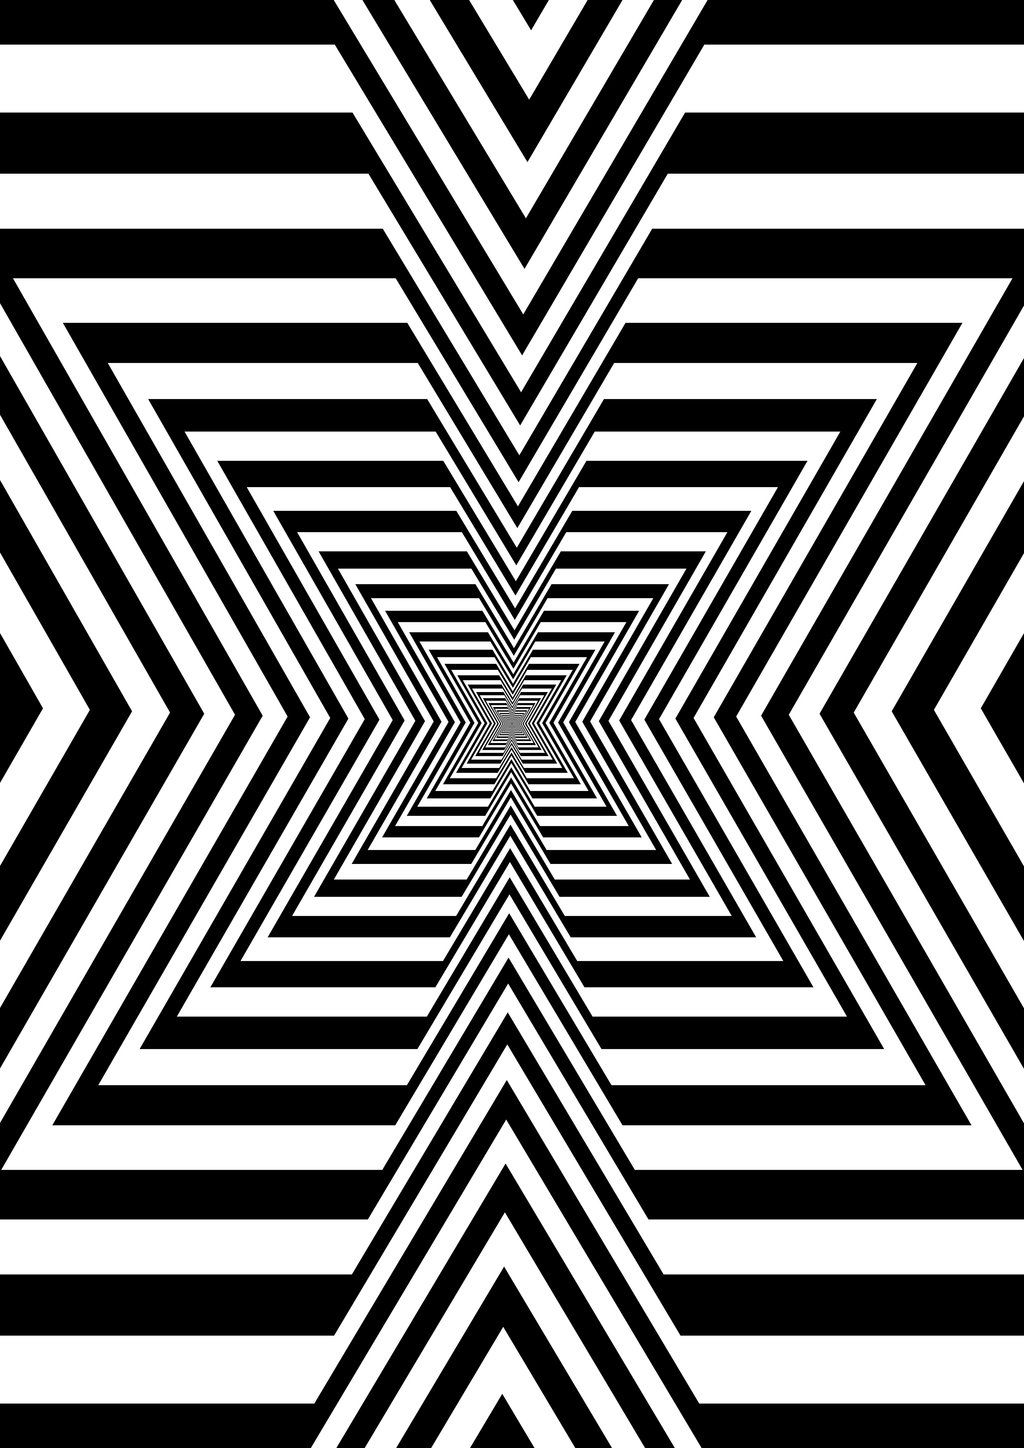 Crossing point optical illusion quilts art optical optical illusions trippy gif op